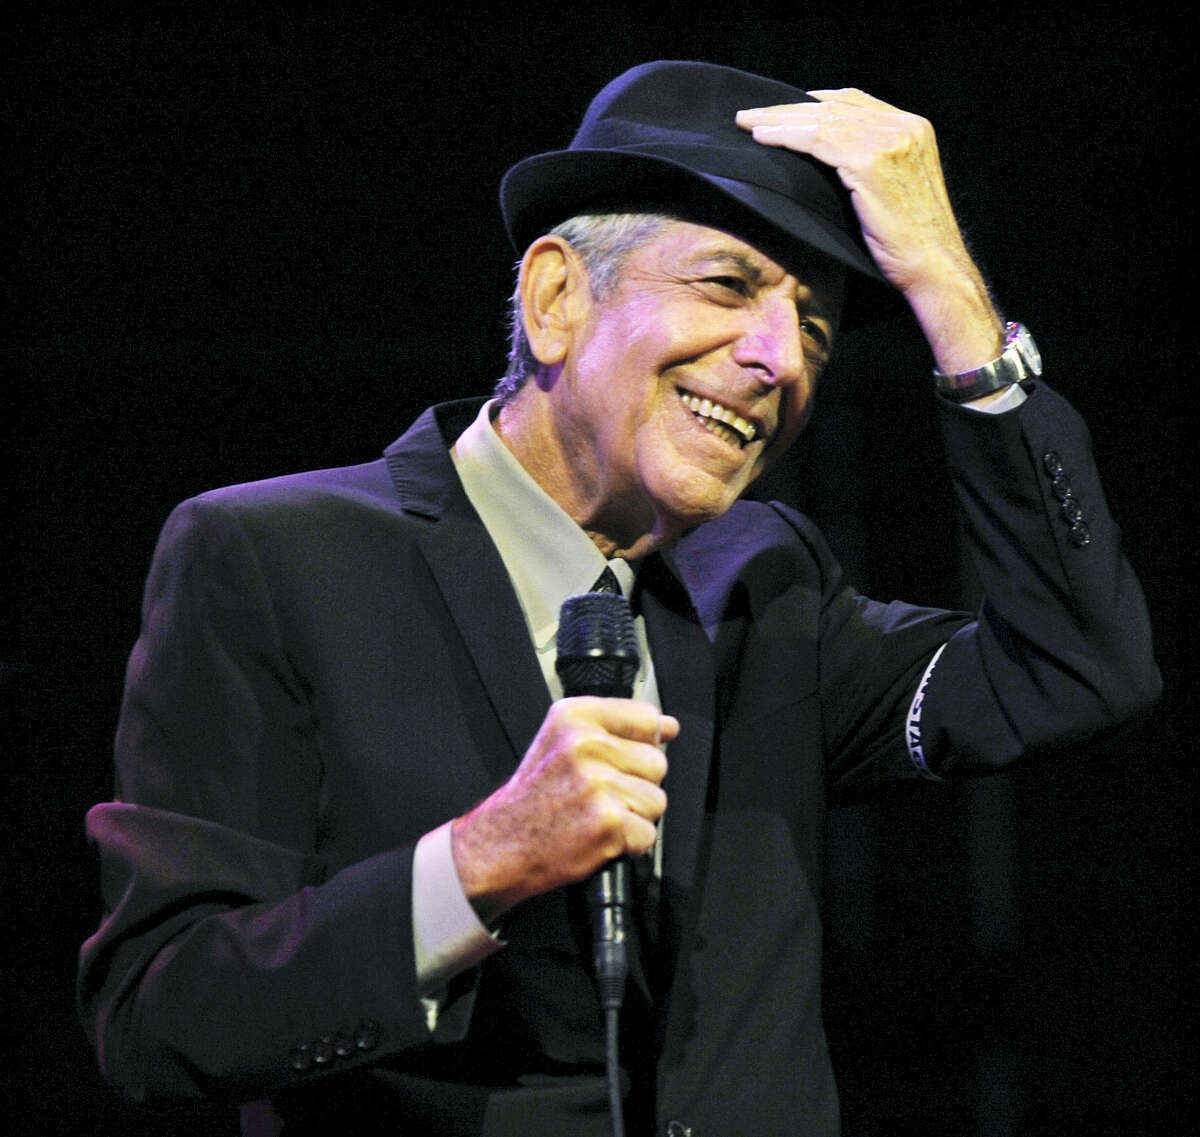 """In this April 17, 2009, file photo, Leonard Cohen performs during the first day of the Coachella Valley Music & Arts Festival in Indio, Calif. Cohen, the gravelly-voiced Canadian singer-songwriter of hits like """"Hallelujah,"""" """"Suzanne"""" and """"Bird on a Wire,"""" has died, his management said in a statement Thursday, Nov. 9, 2016. He was 82."""